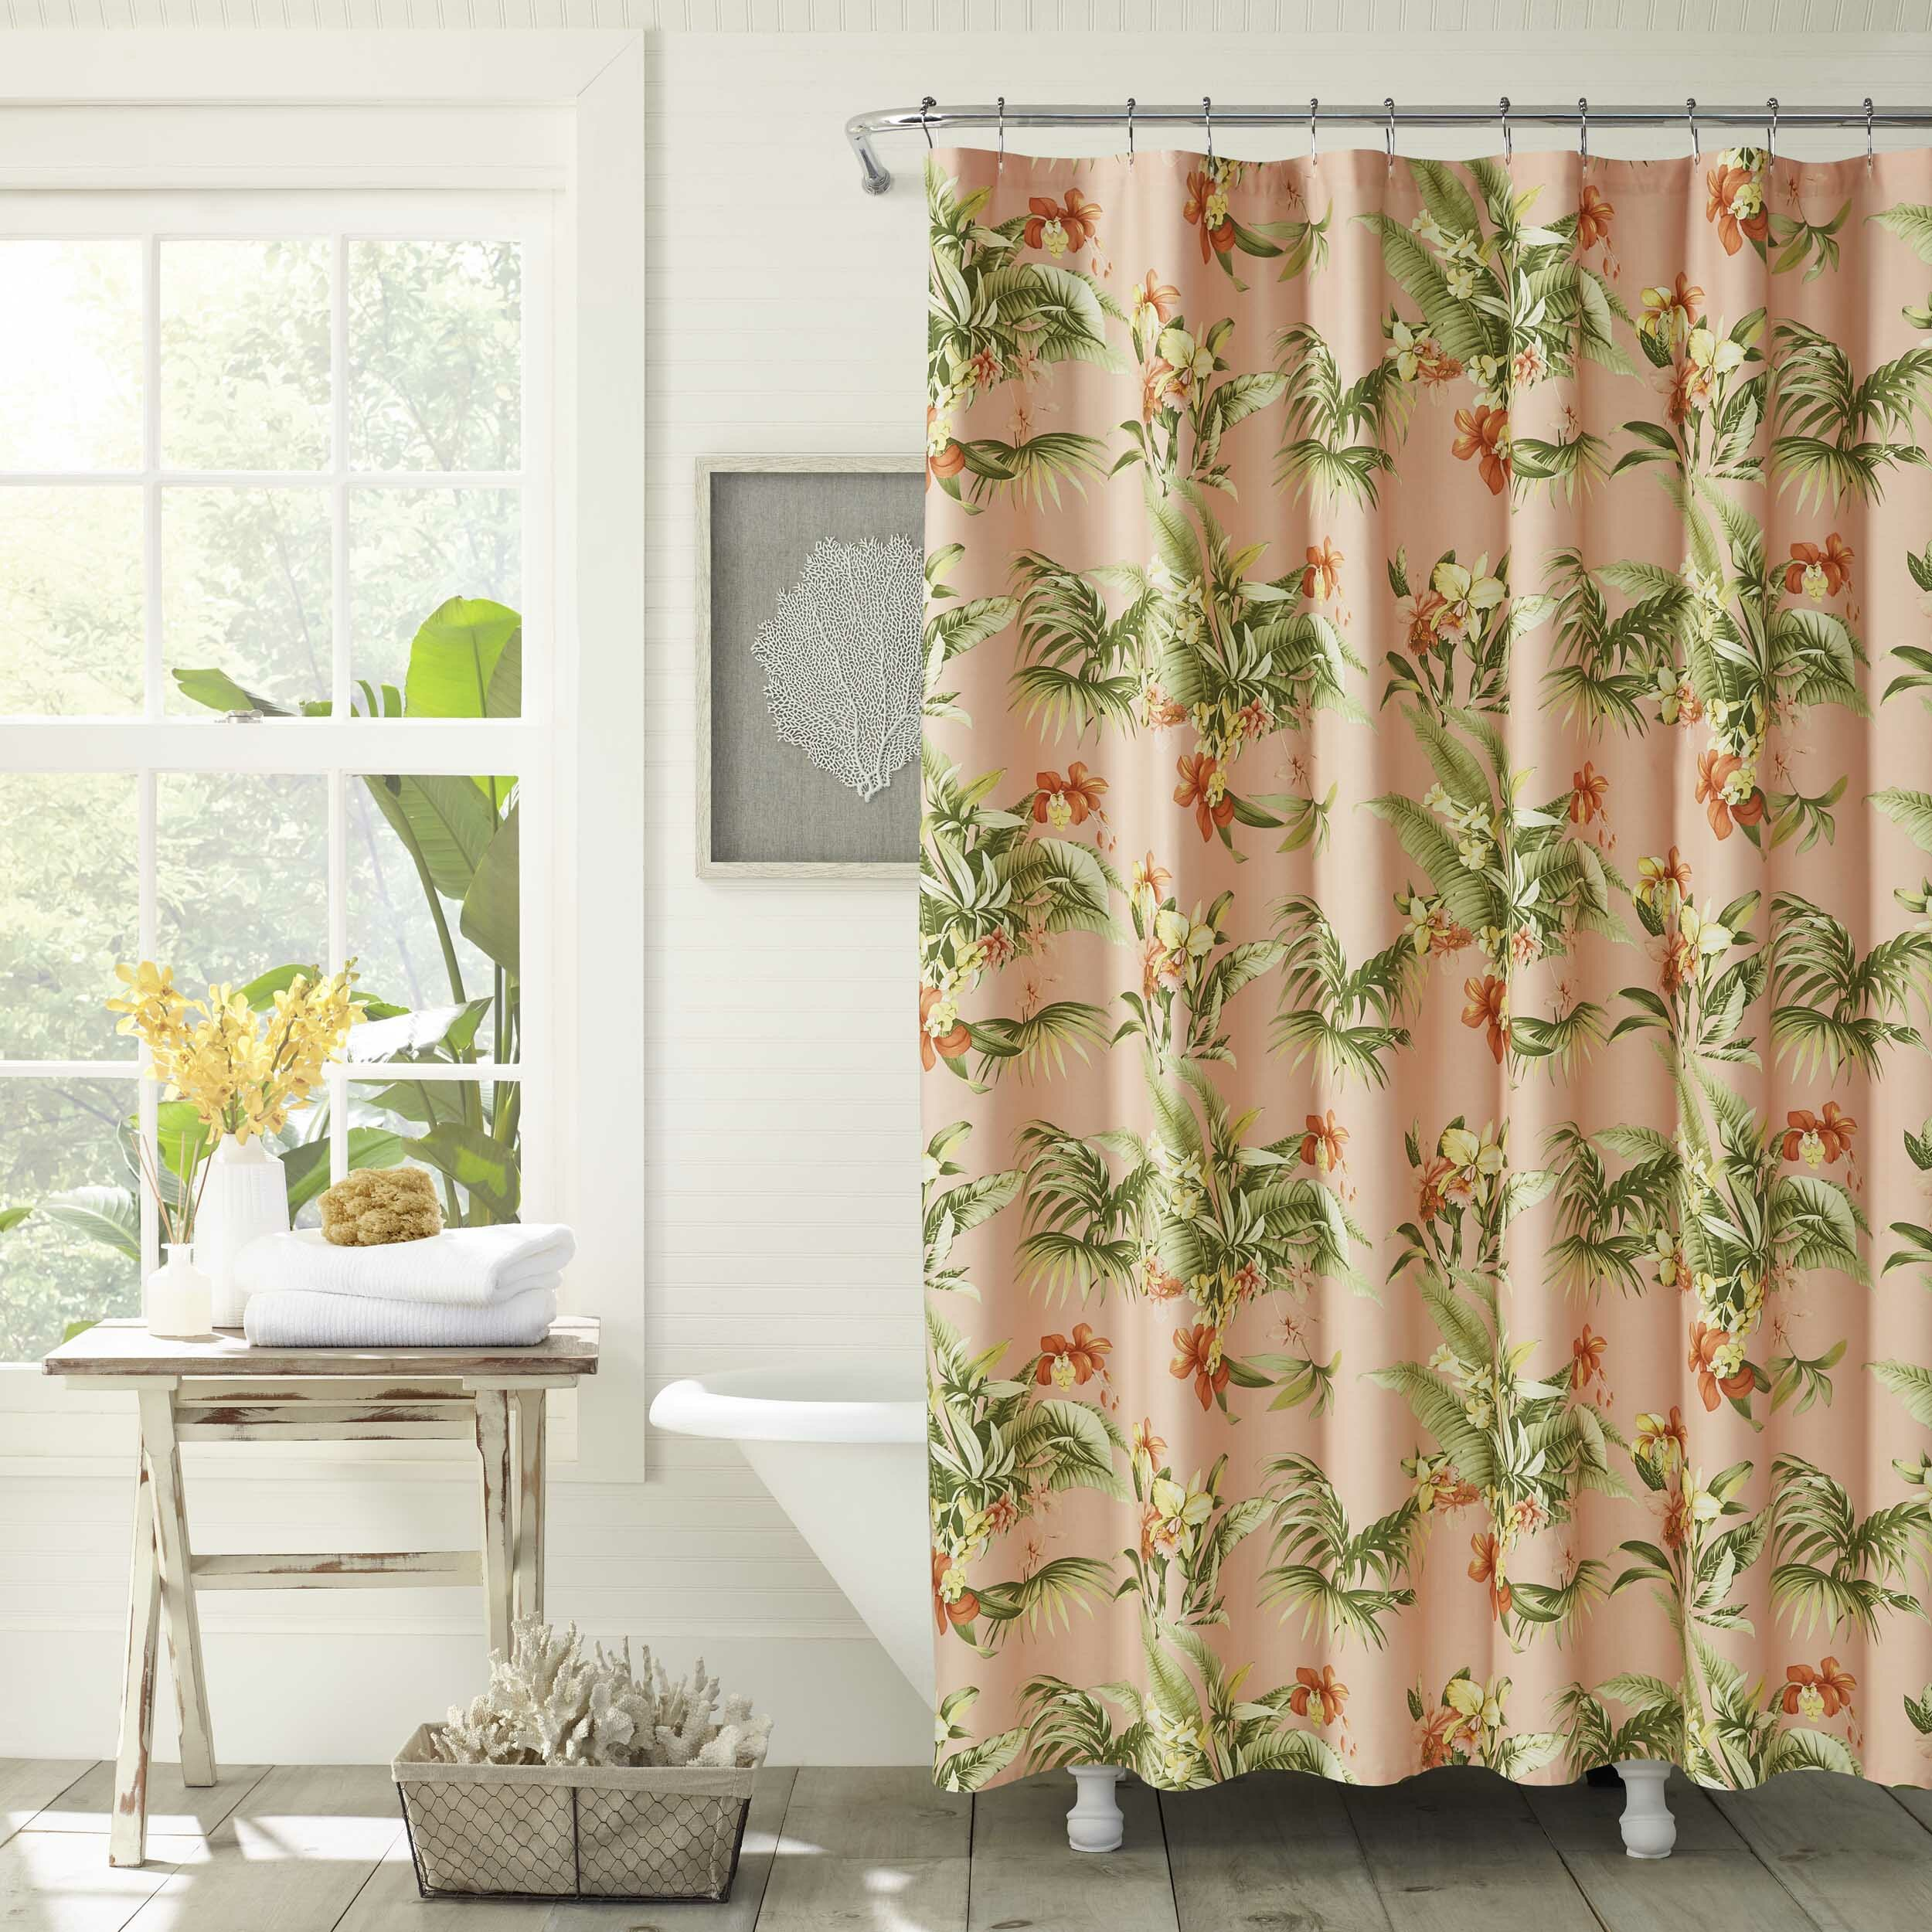 Bathroom Accessories Shower Curtains Fabric Shower Curtains